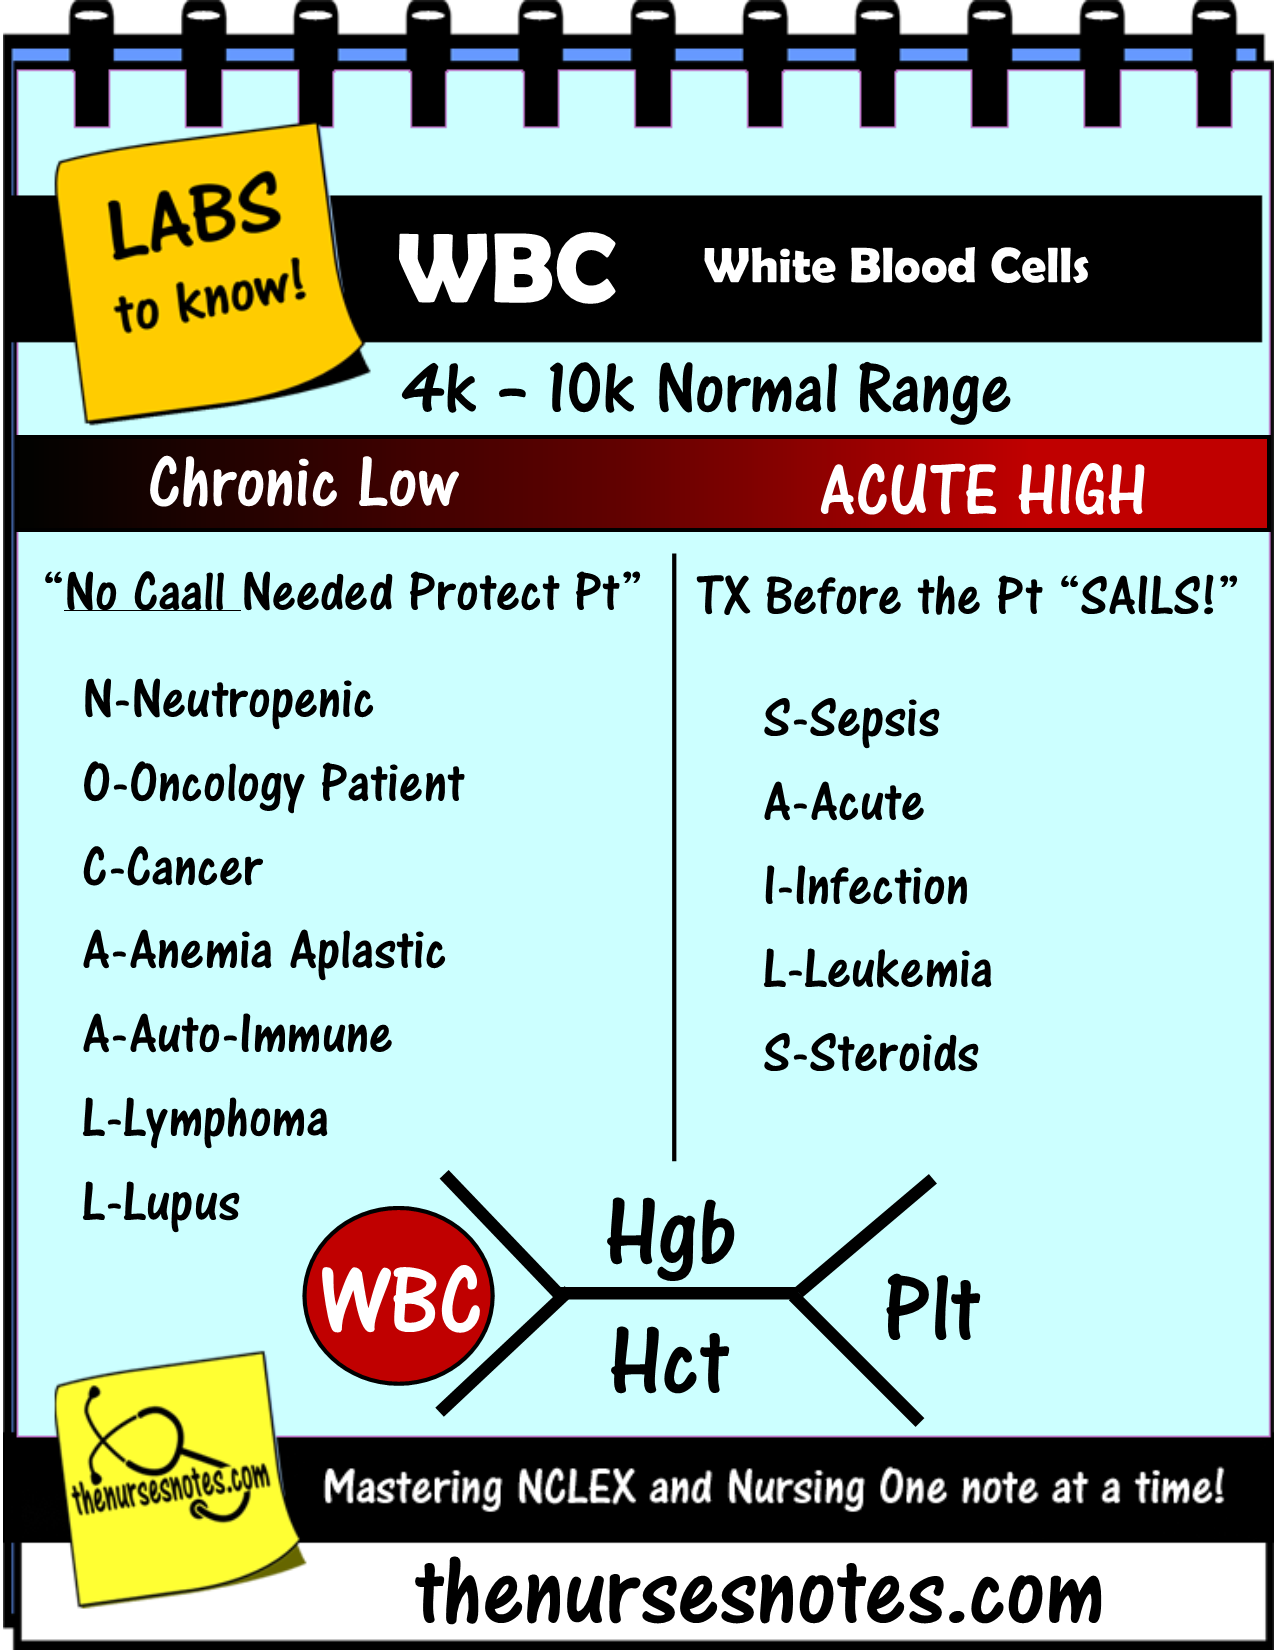 Cbc complete blood count wbc platelets hgb hct bmp chem7 fishbone cbc complete blood count wbc platelets hgb hct bmp chem7 fishbone diagram explaining labs from ccuart Images